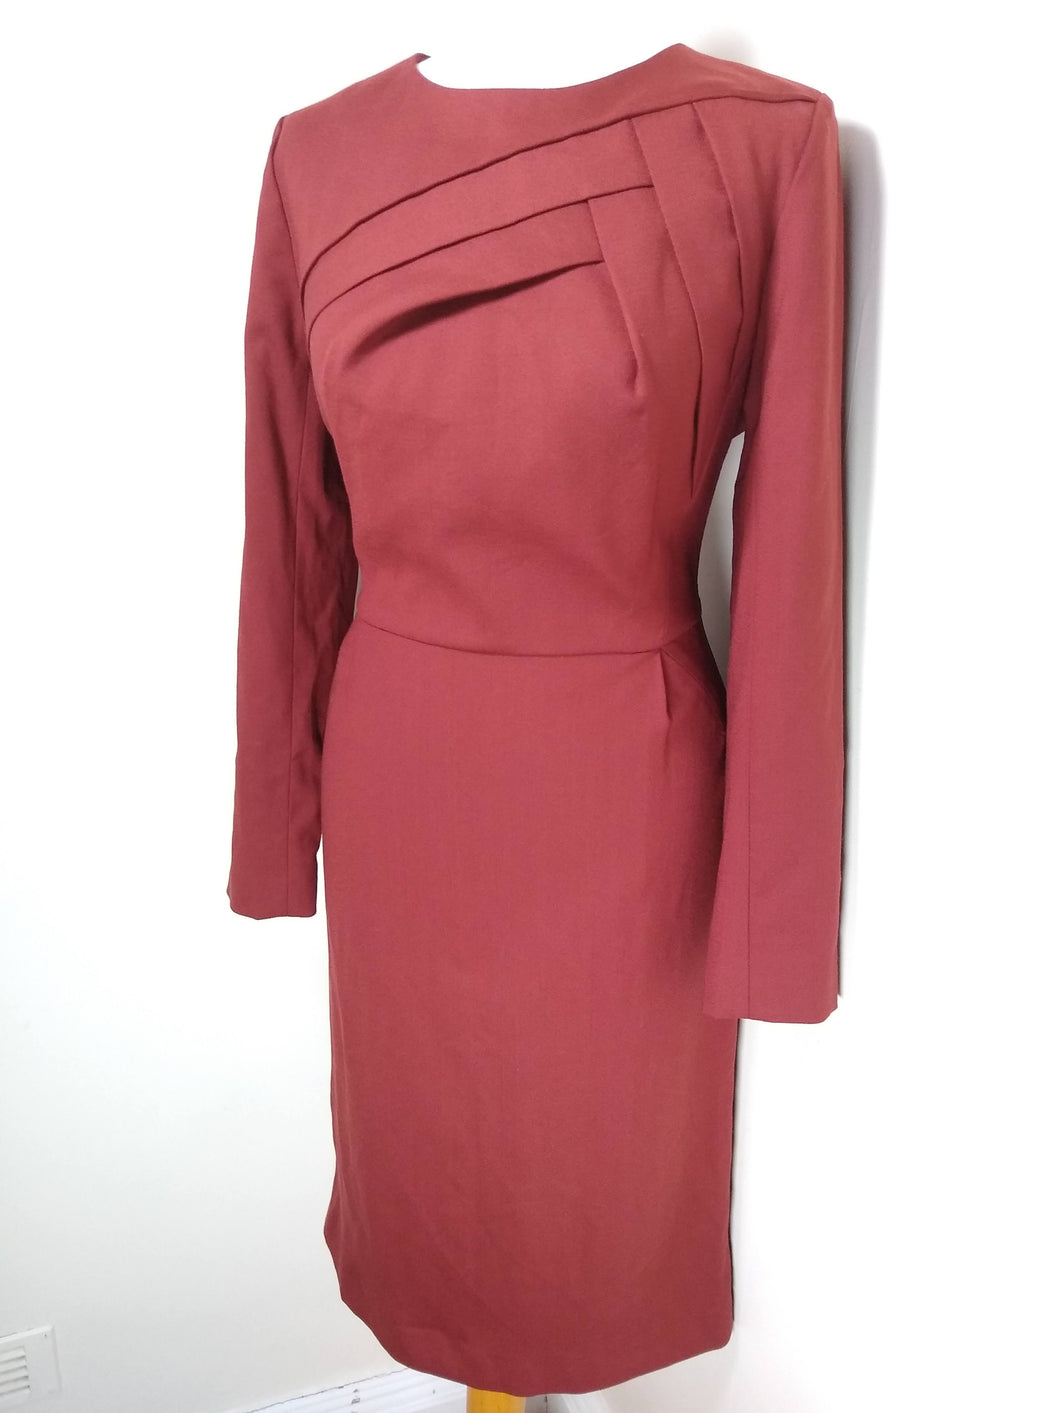 The Fold Dress Size 14